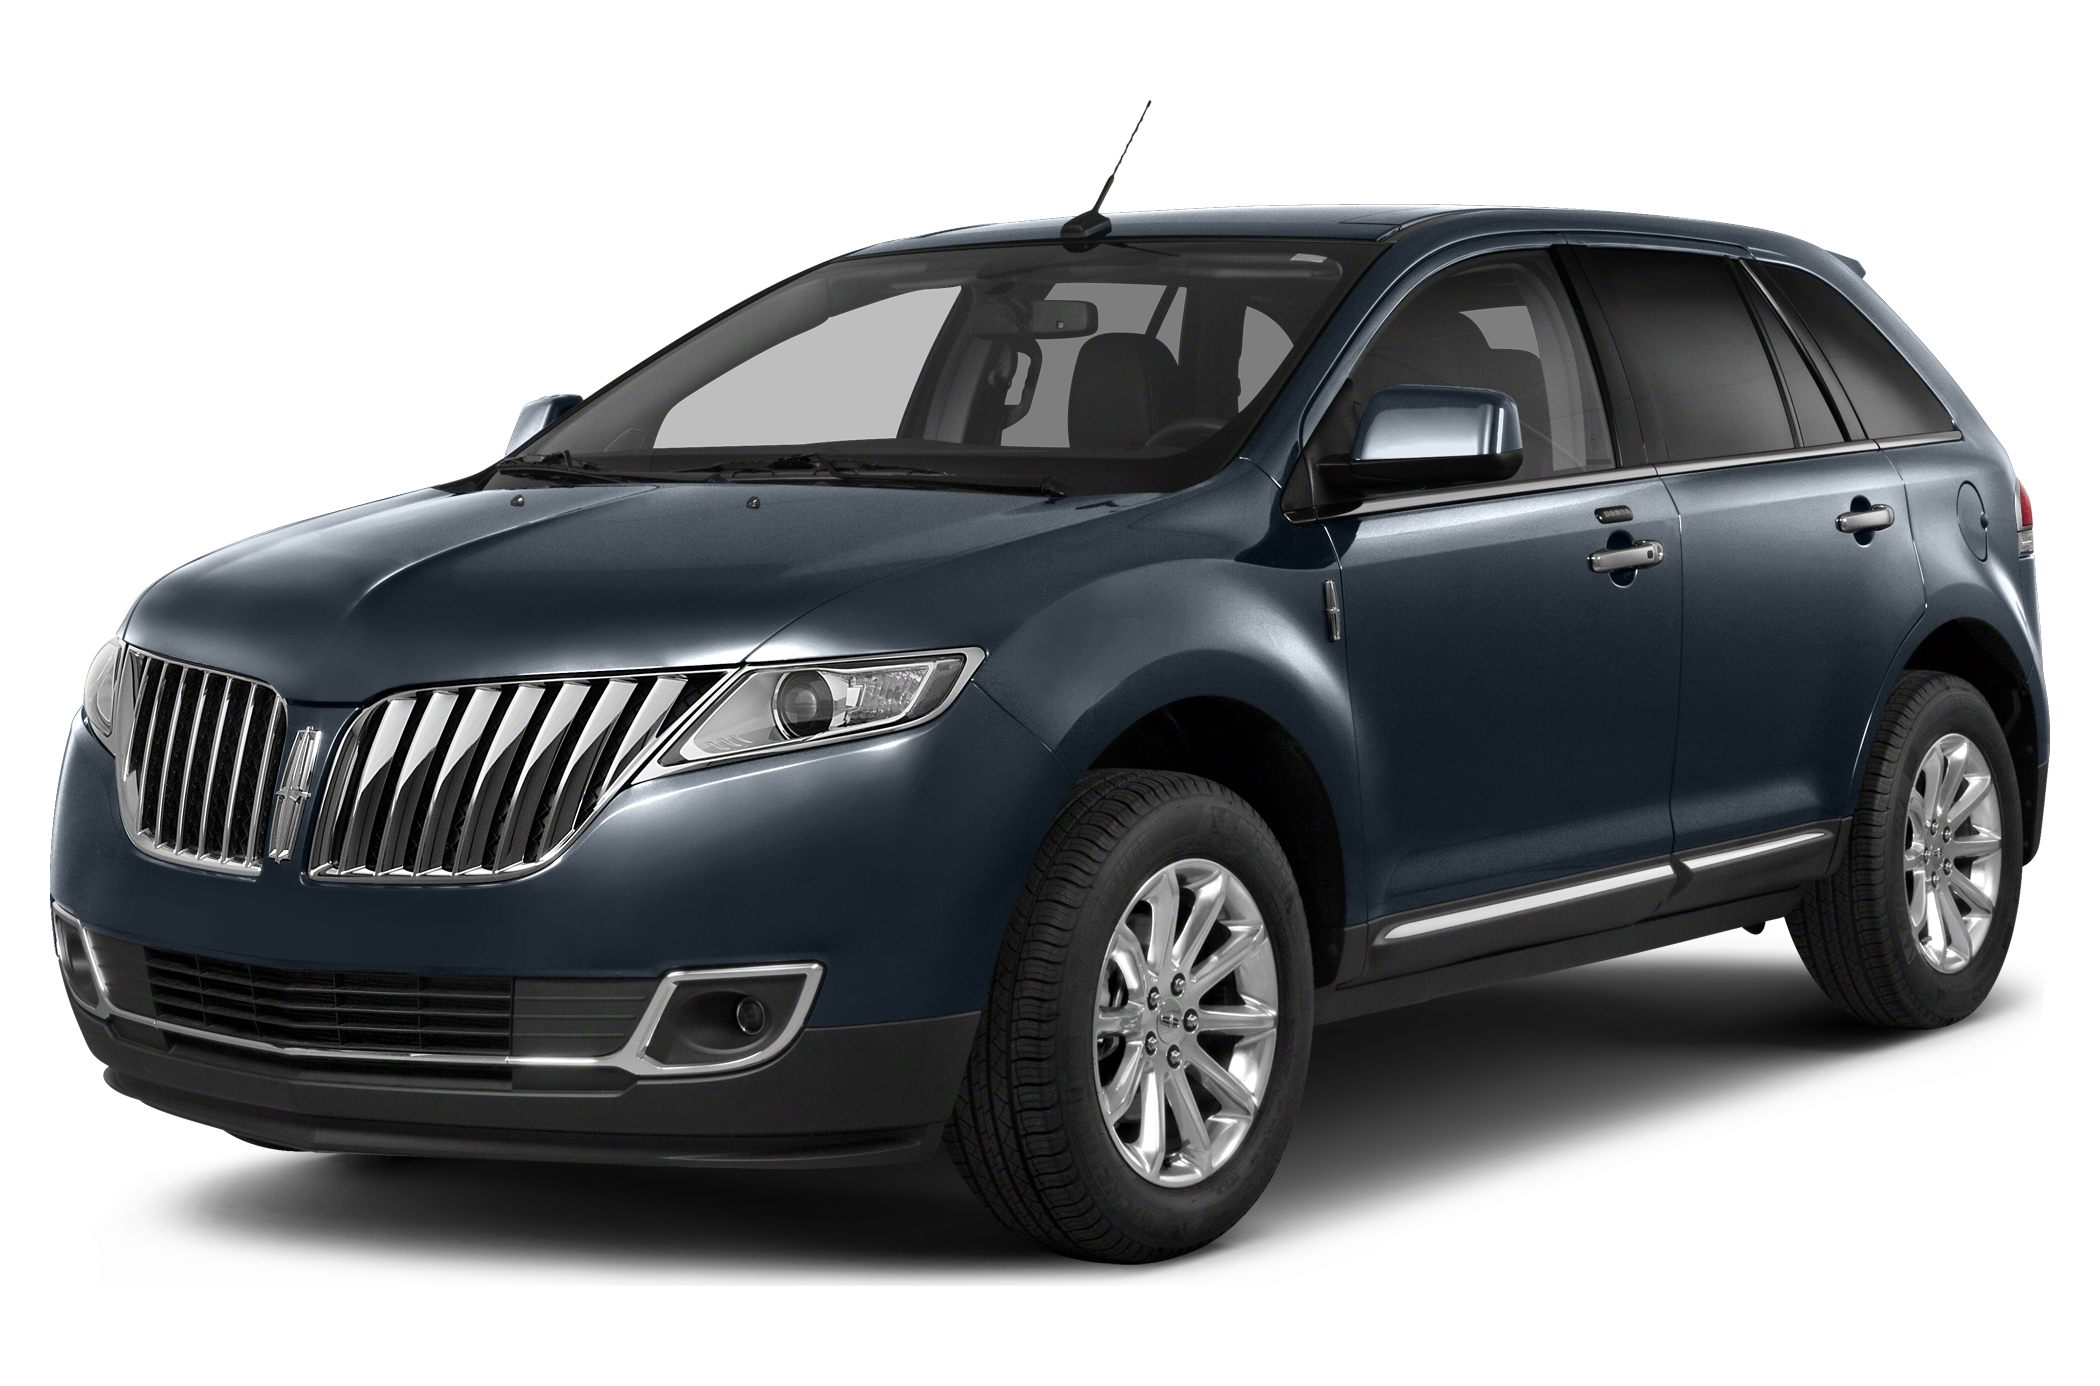 used 2013 lincoln mkx basesee details